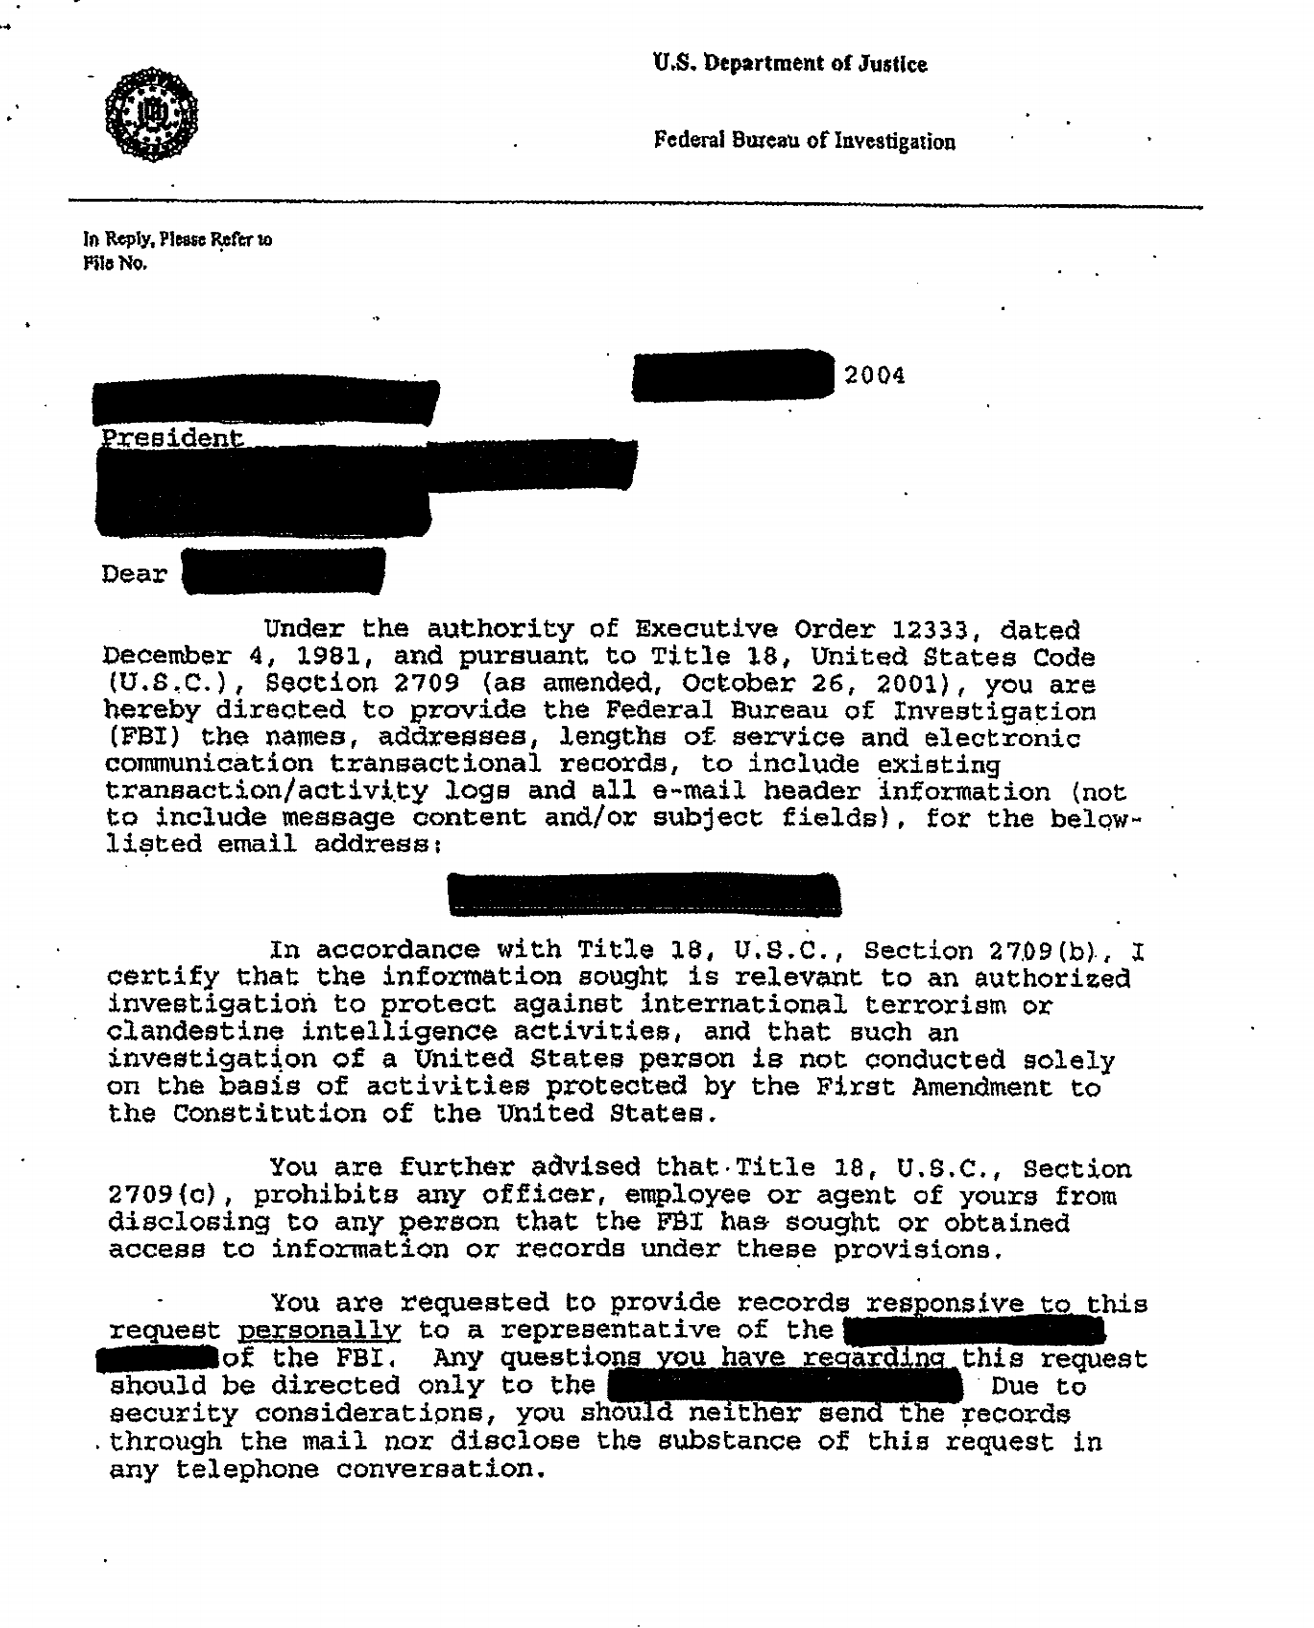 Excerpt from the national security letter, or NSL, that Nicholas Merrill received from the FBI.